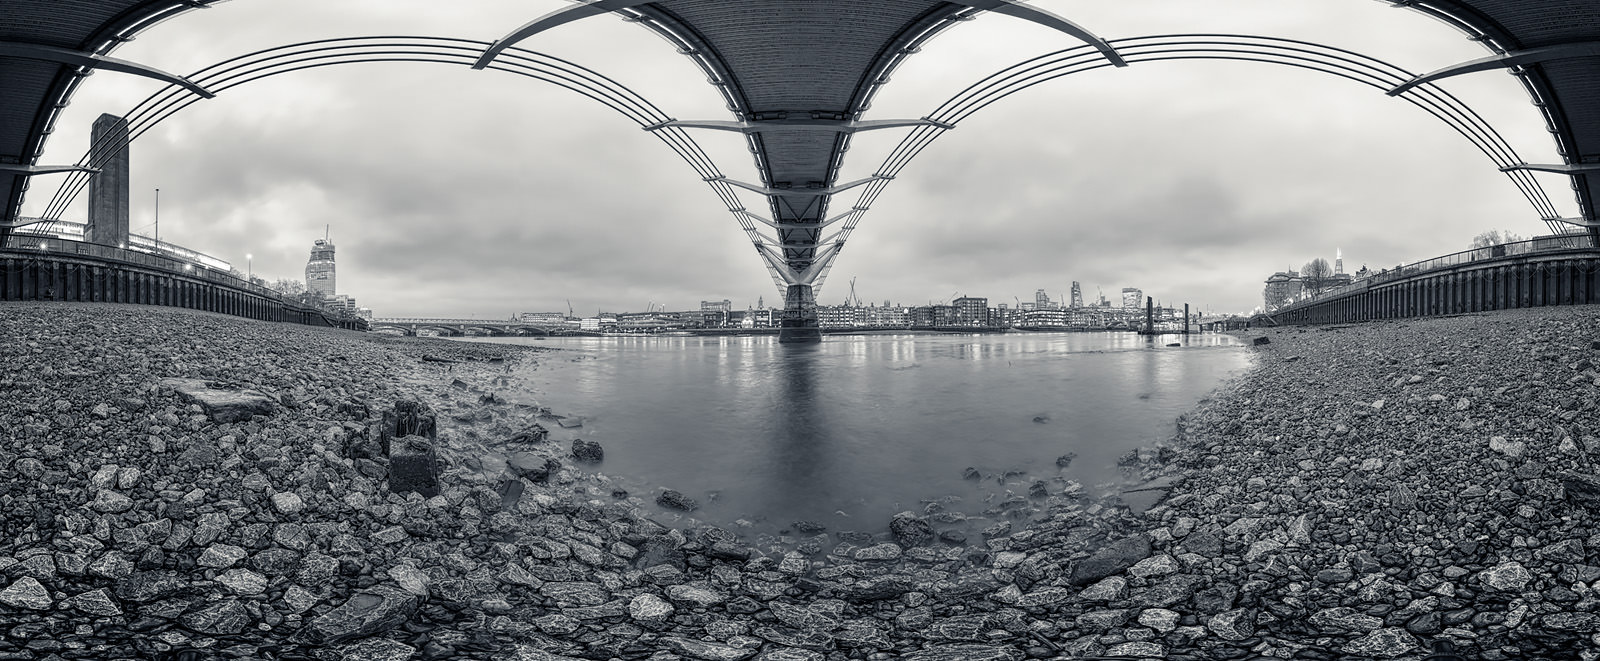 Under The Bridge Acrylic - London Black & White Fine Art Photo